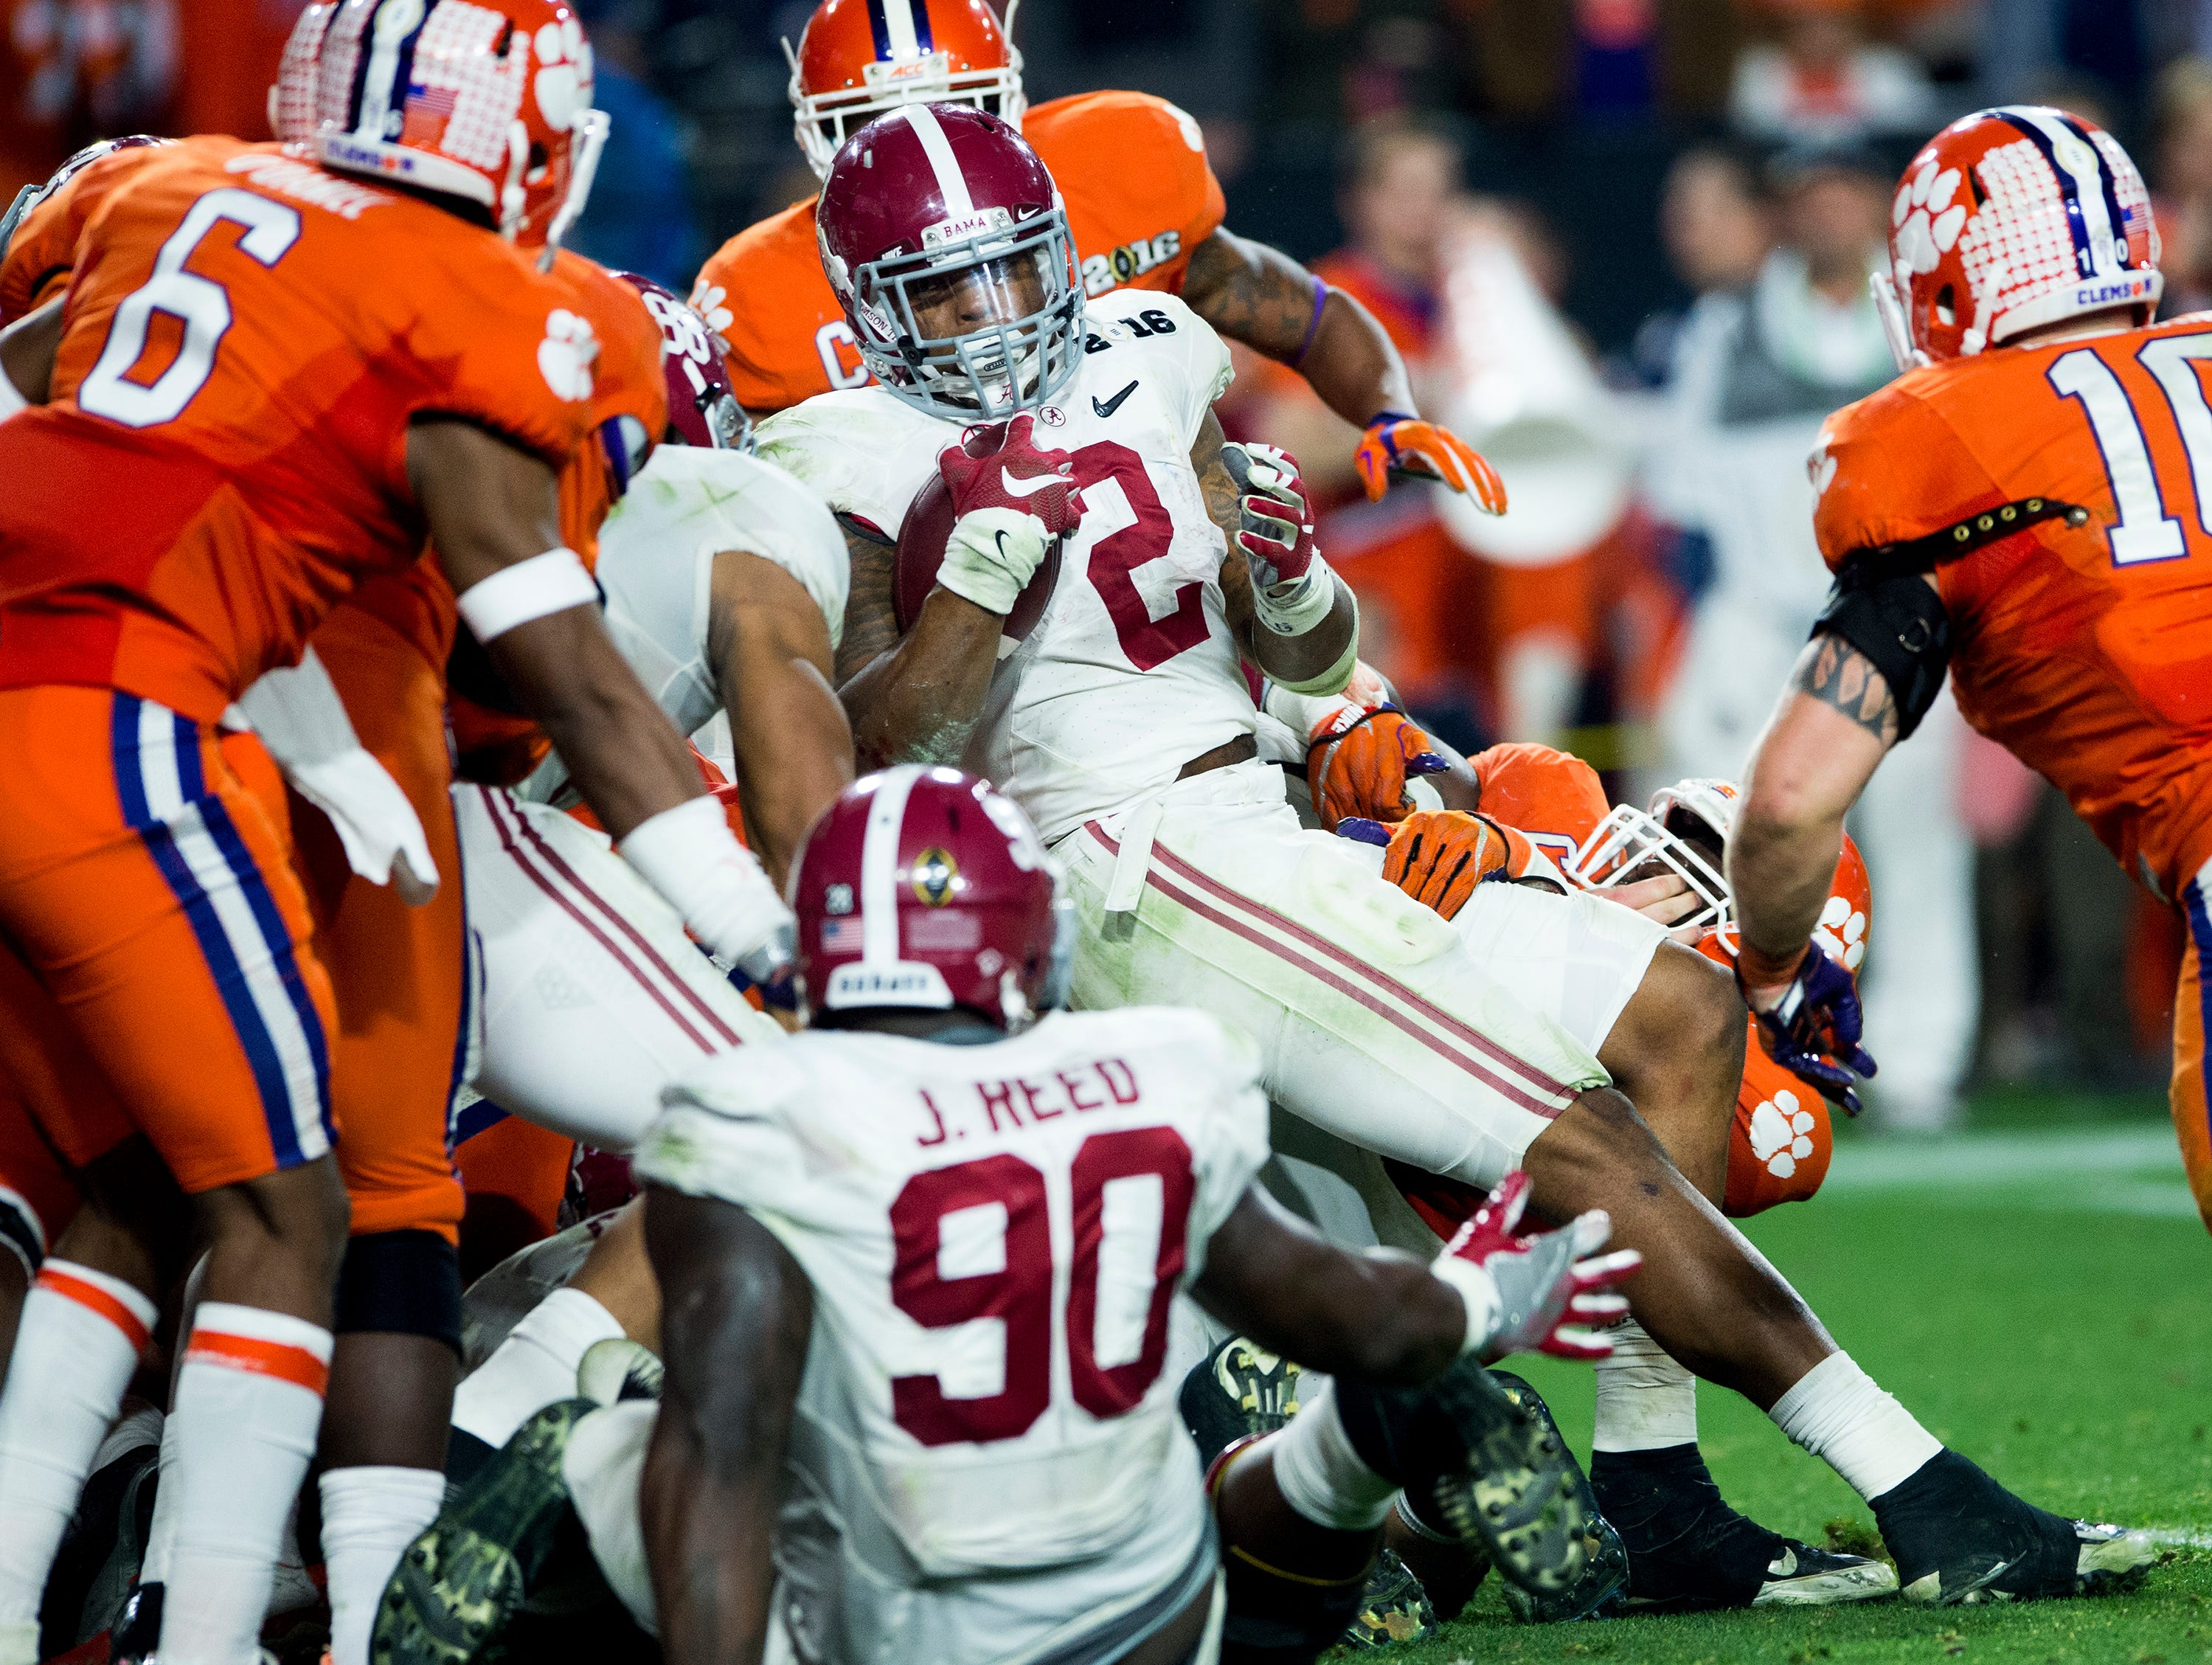 Alabama running back Derrick Henry (2) scores the final touchdown against Clemson in the College Football Playoff Championship Game on Monday January 11, 2016 at University of Phoenix Stadium in Glendale, Az.